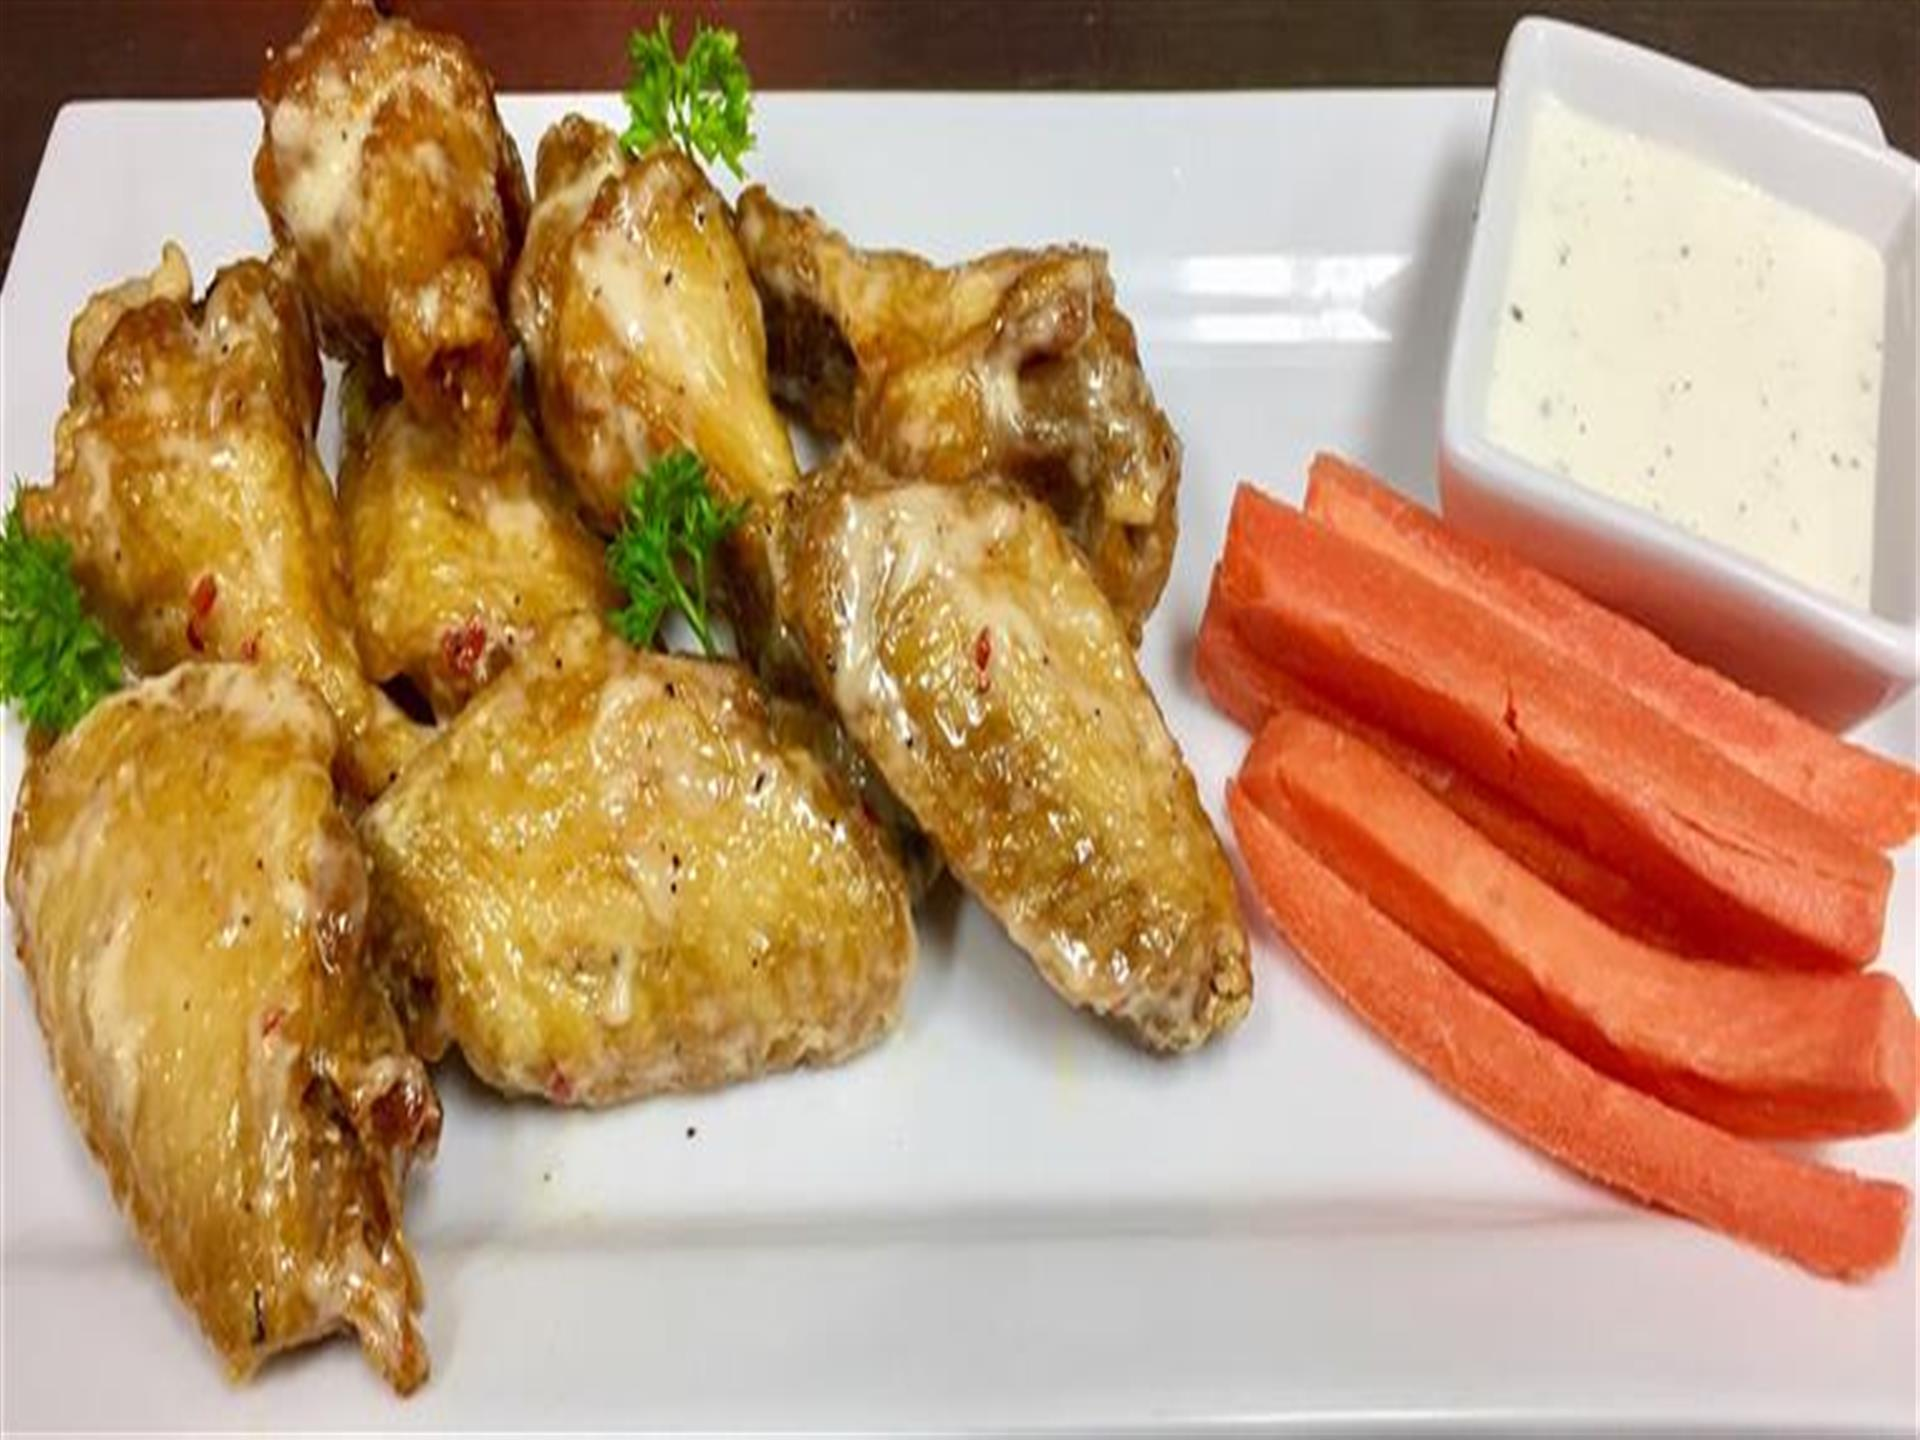 wings with carrots and dipping sauce on a plate